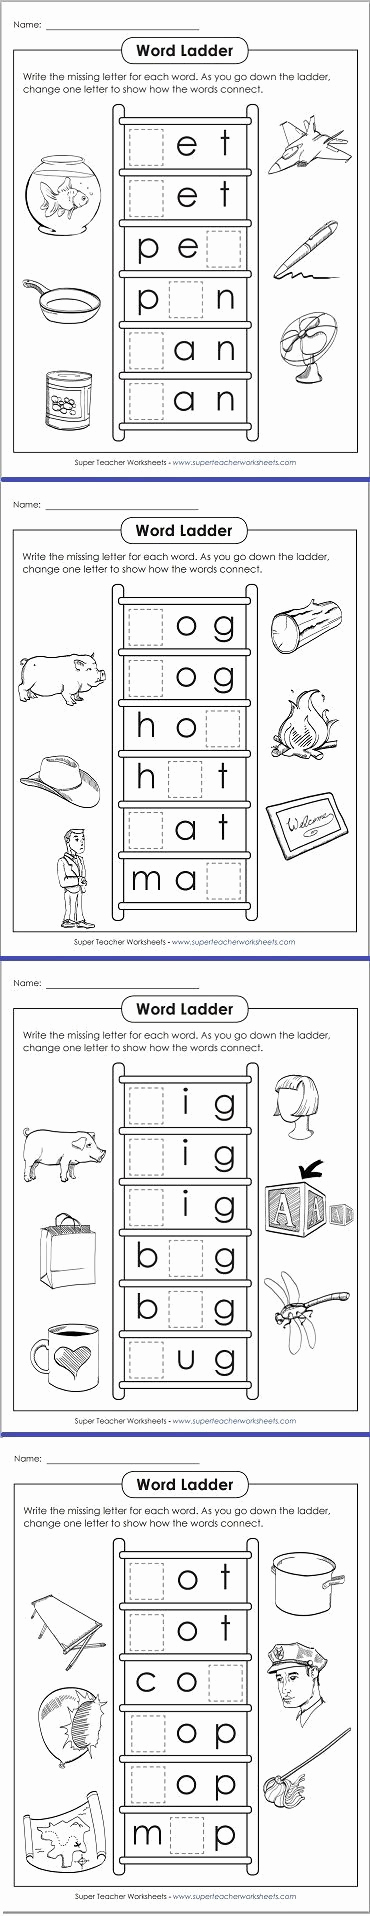 Word Ladder Worksheets Fresh Take A Look at these Fun Word Ladders for Phonics Practice